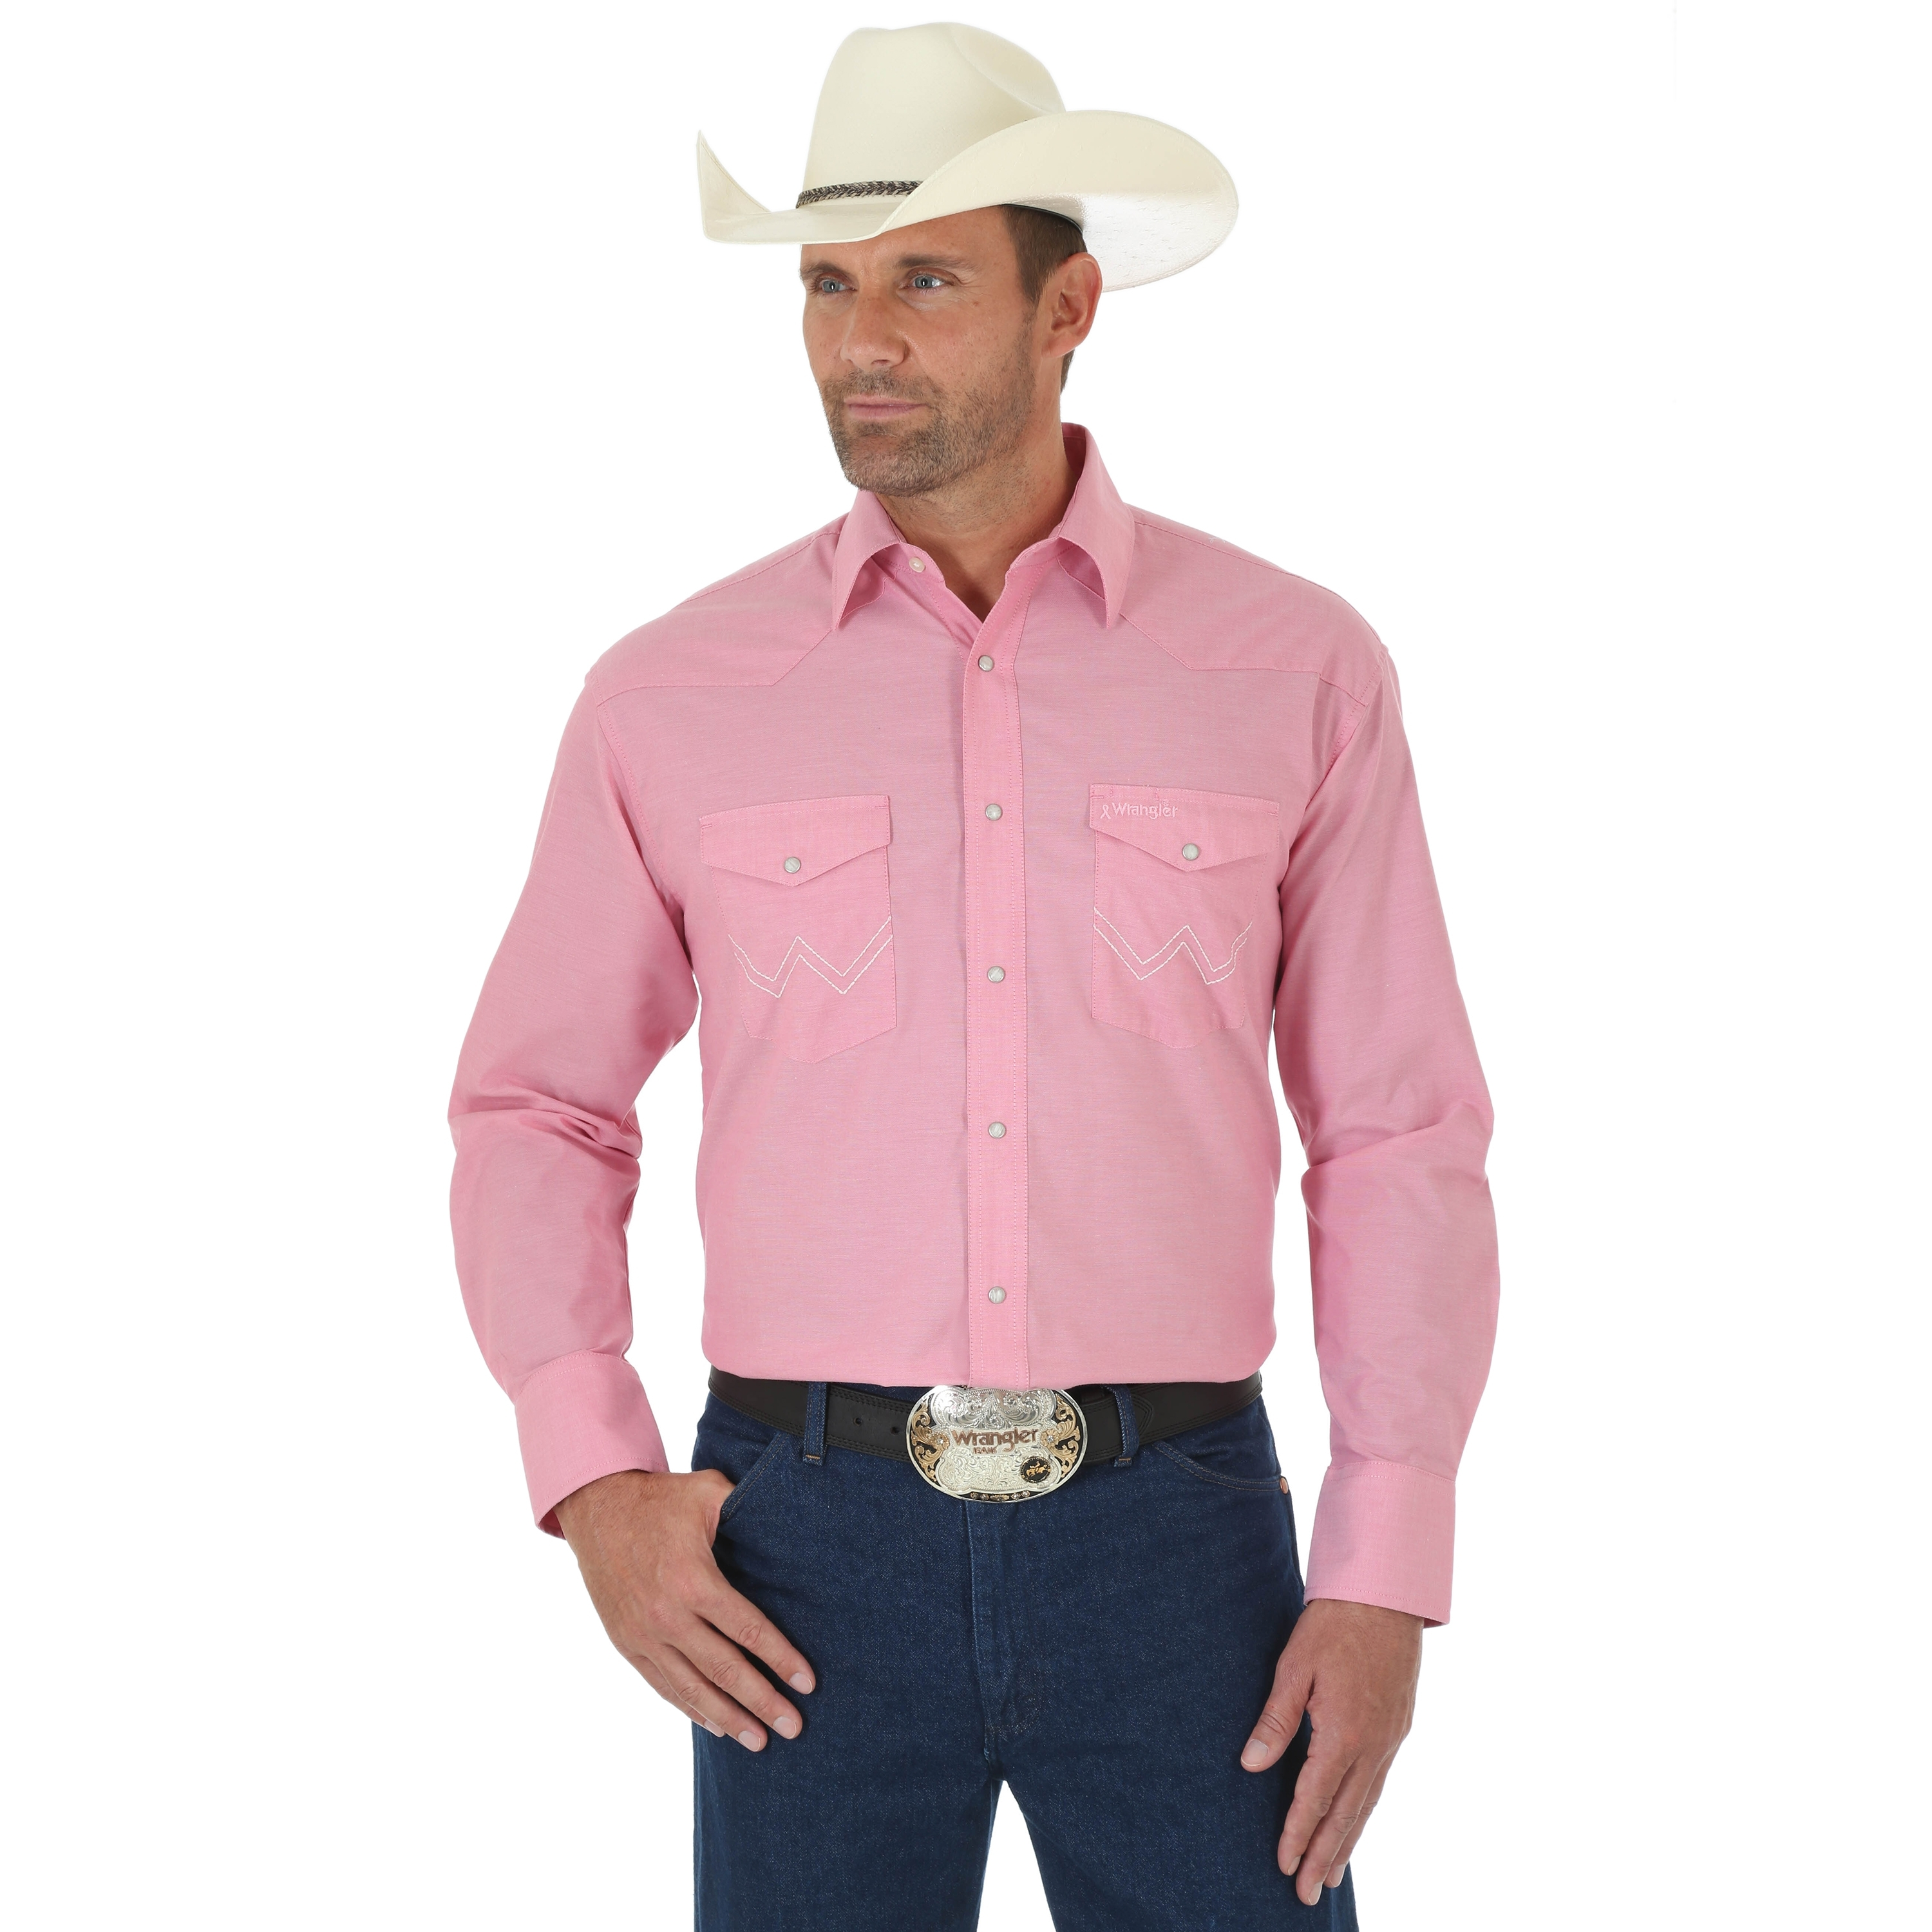 Menu2019S Pink Long Sleeve Shirt - Shirts Rock